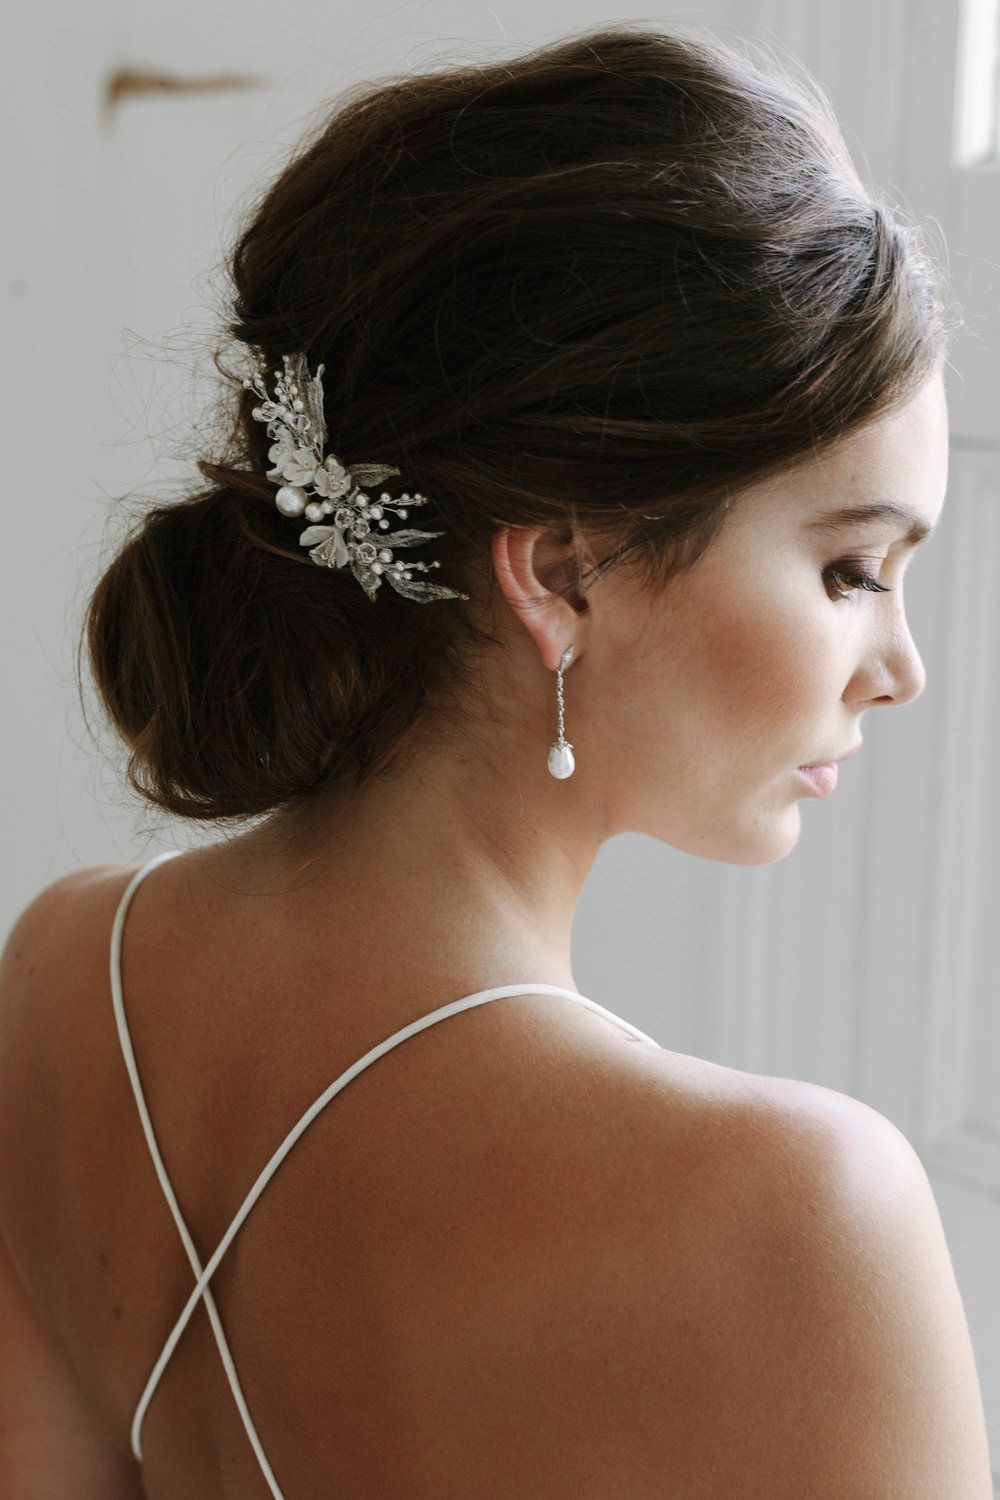 bastien pearl bridal earrings | pearls, wedding accessories and